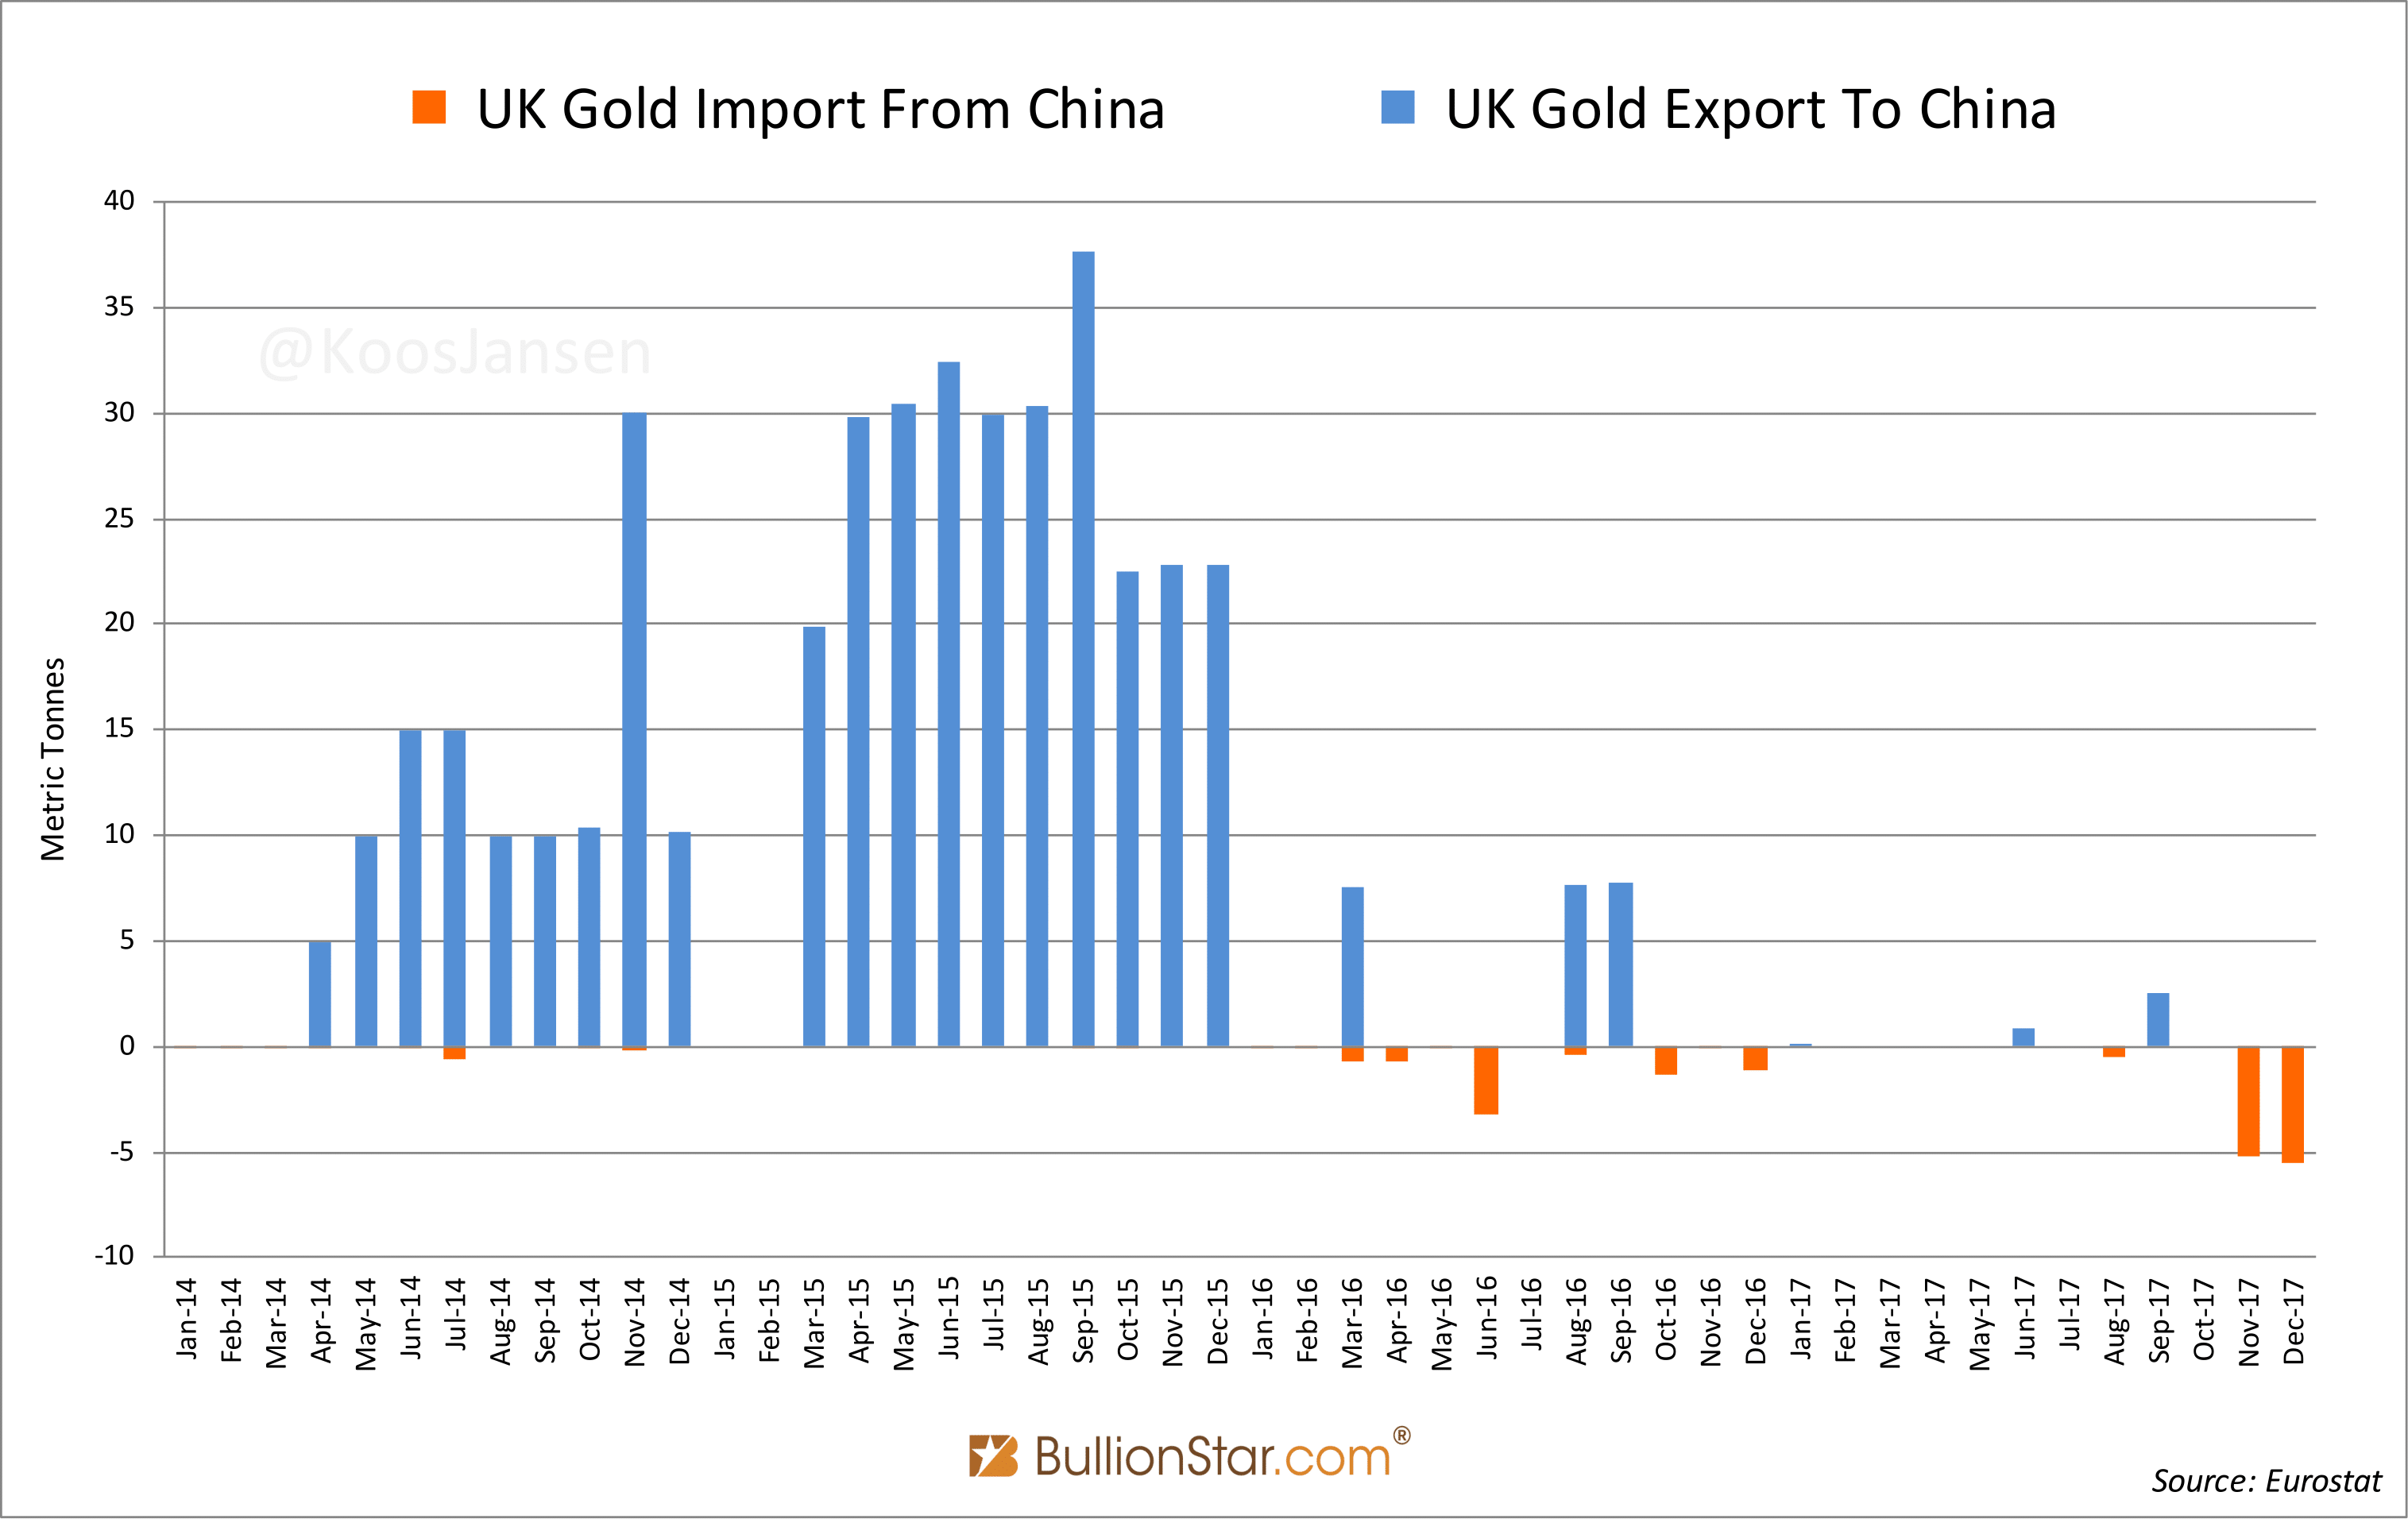 UK Gold Import from and Export to China, Jan 2014 - Dec 2017